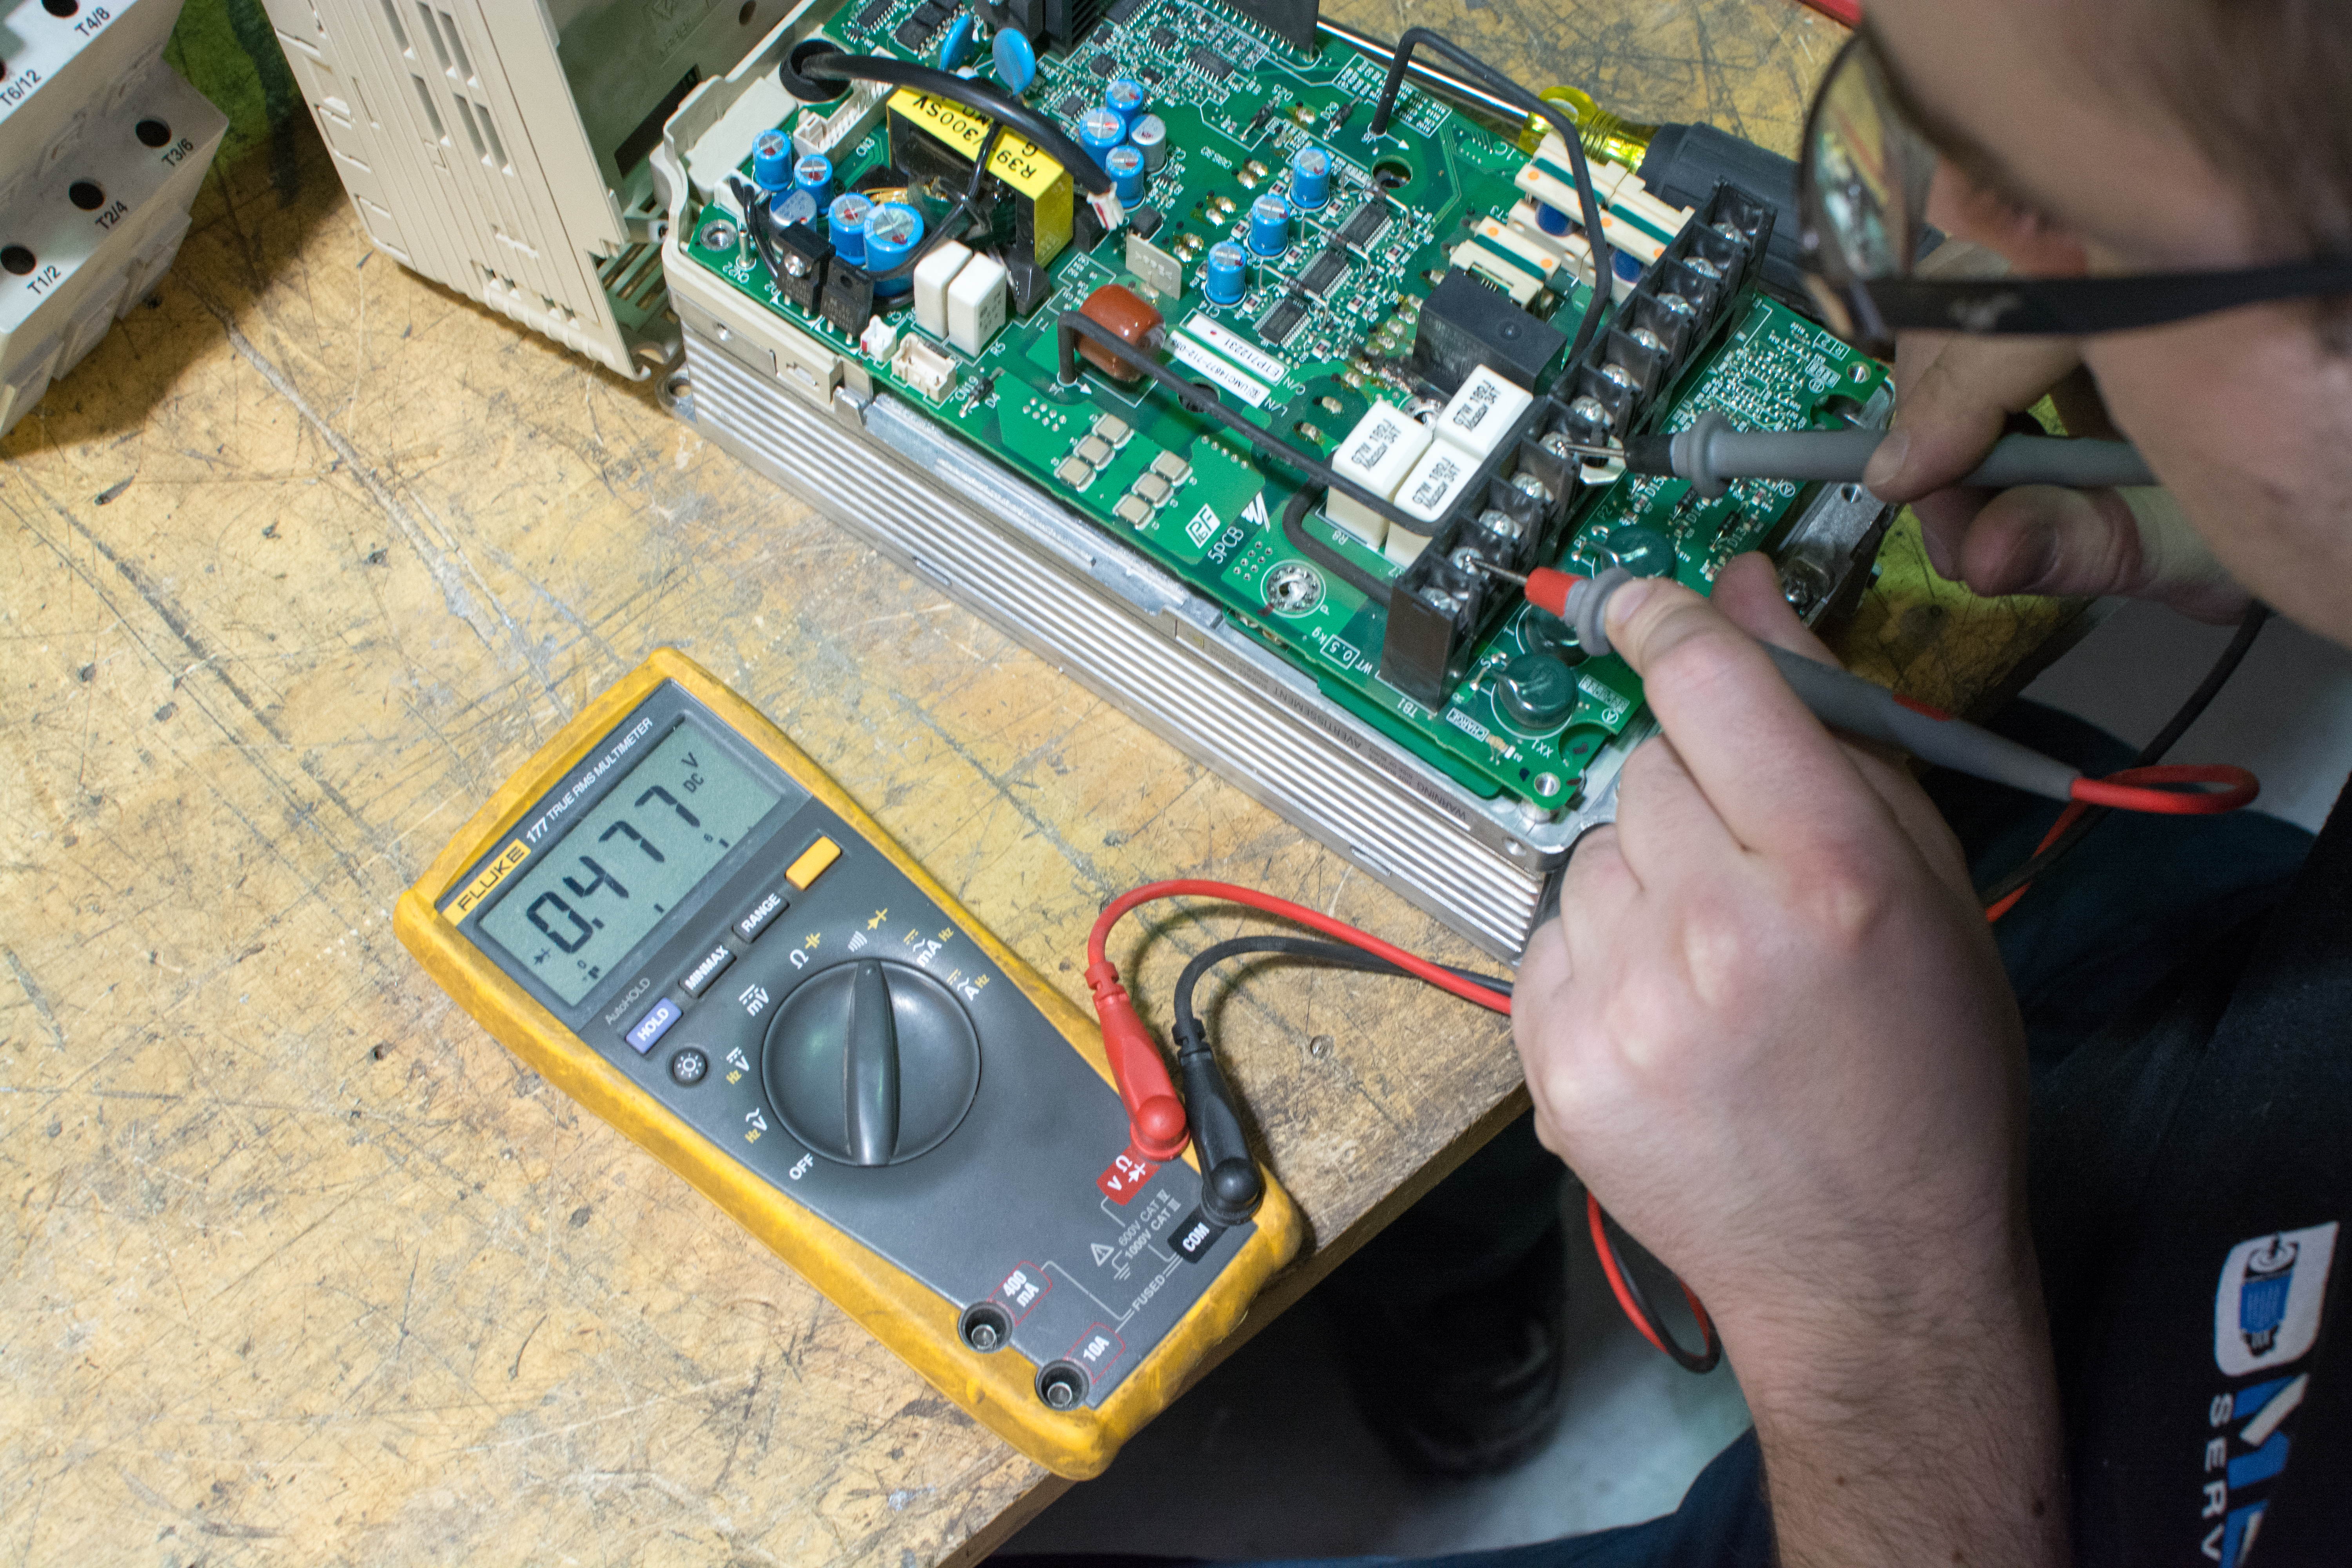 Electronic Board Repair Service Dmeb Wiring In That Happens No Need To Replace The Entire Equipment Simply Have Repaired And Why Not It Tropicalized At Same Time